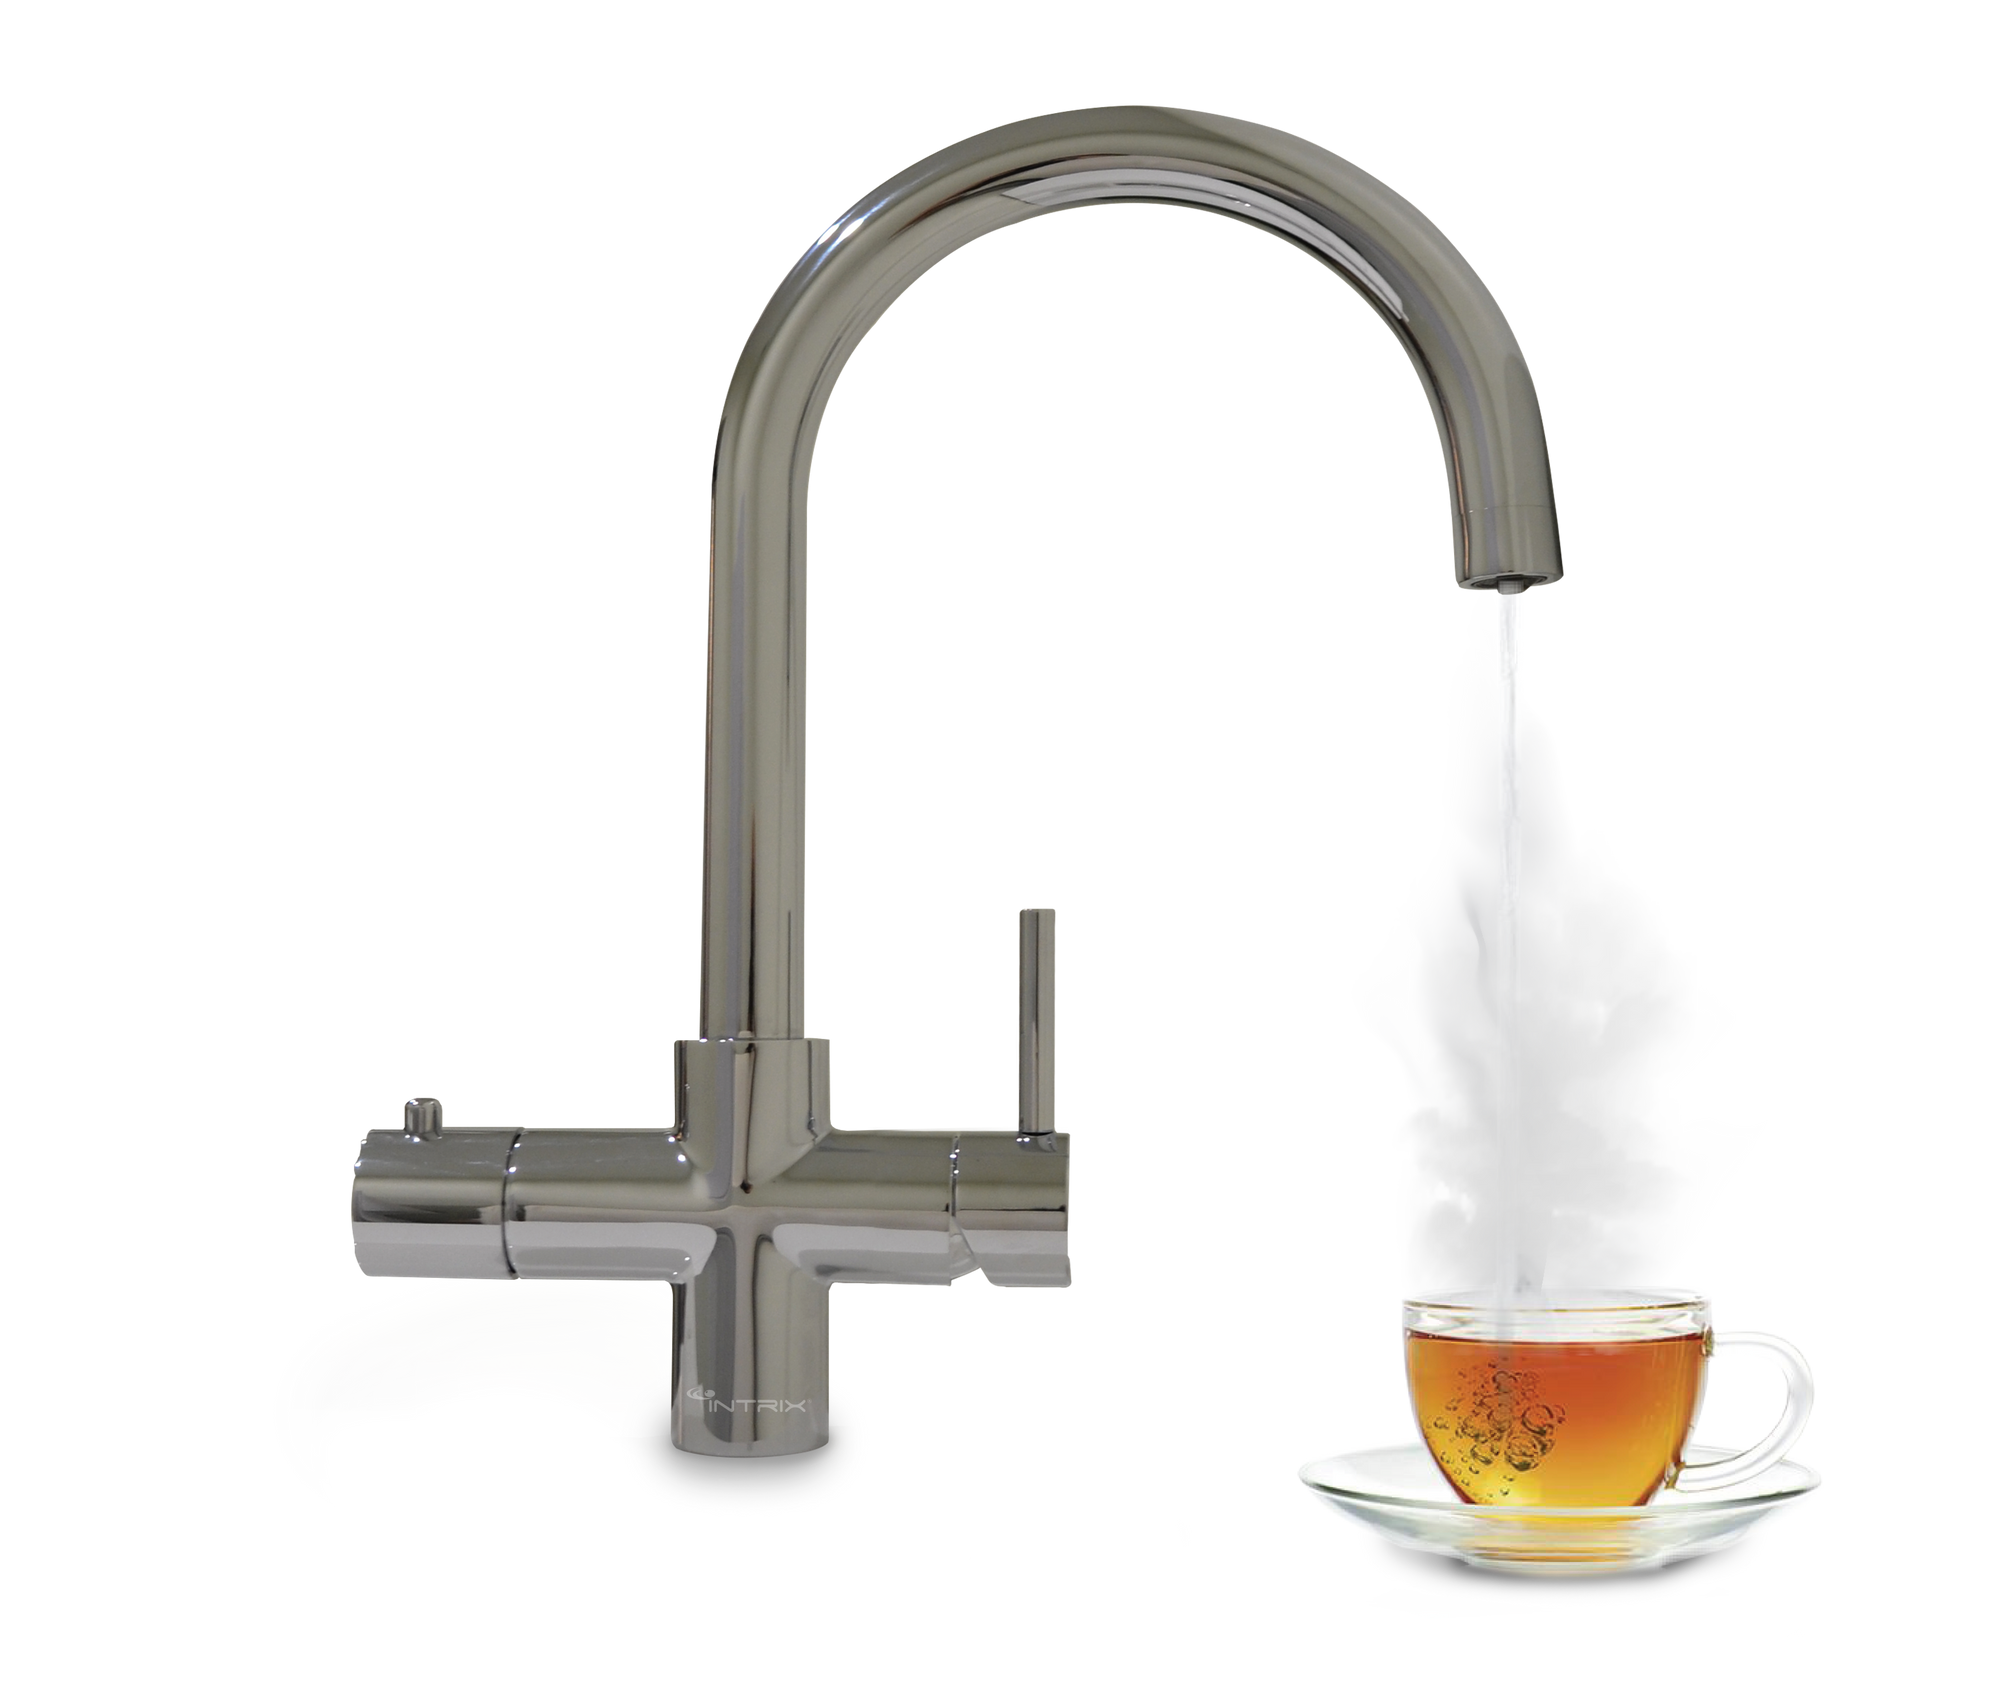 REINZ 3 Instant Boiling Water Tap With Premium 4-in-1 Tap (Chrome)